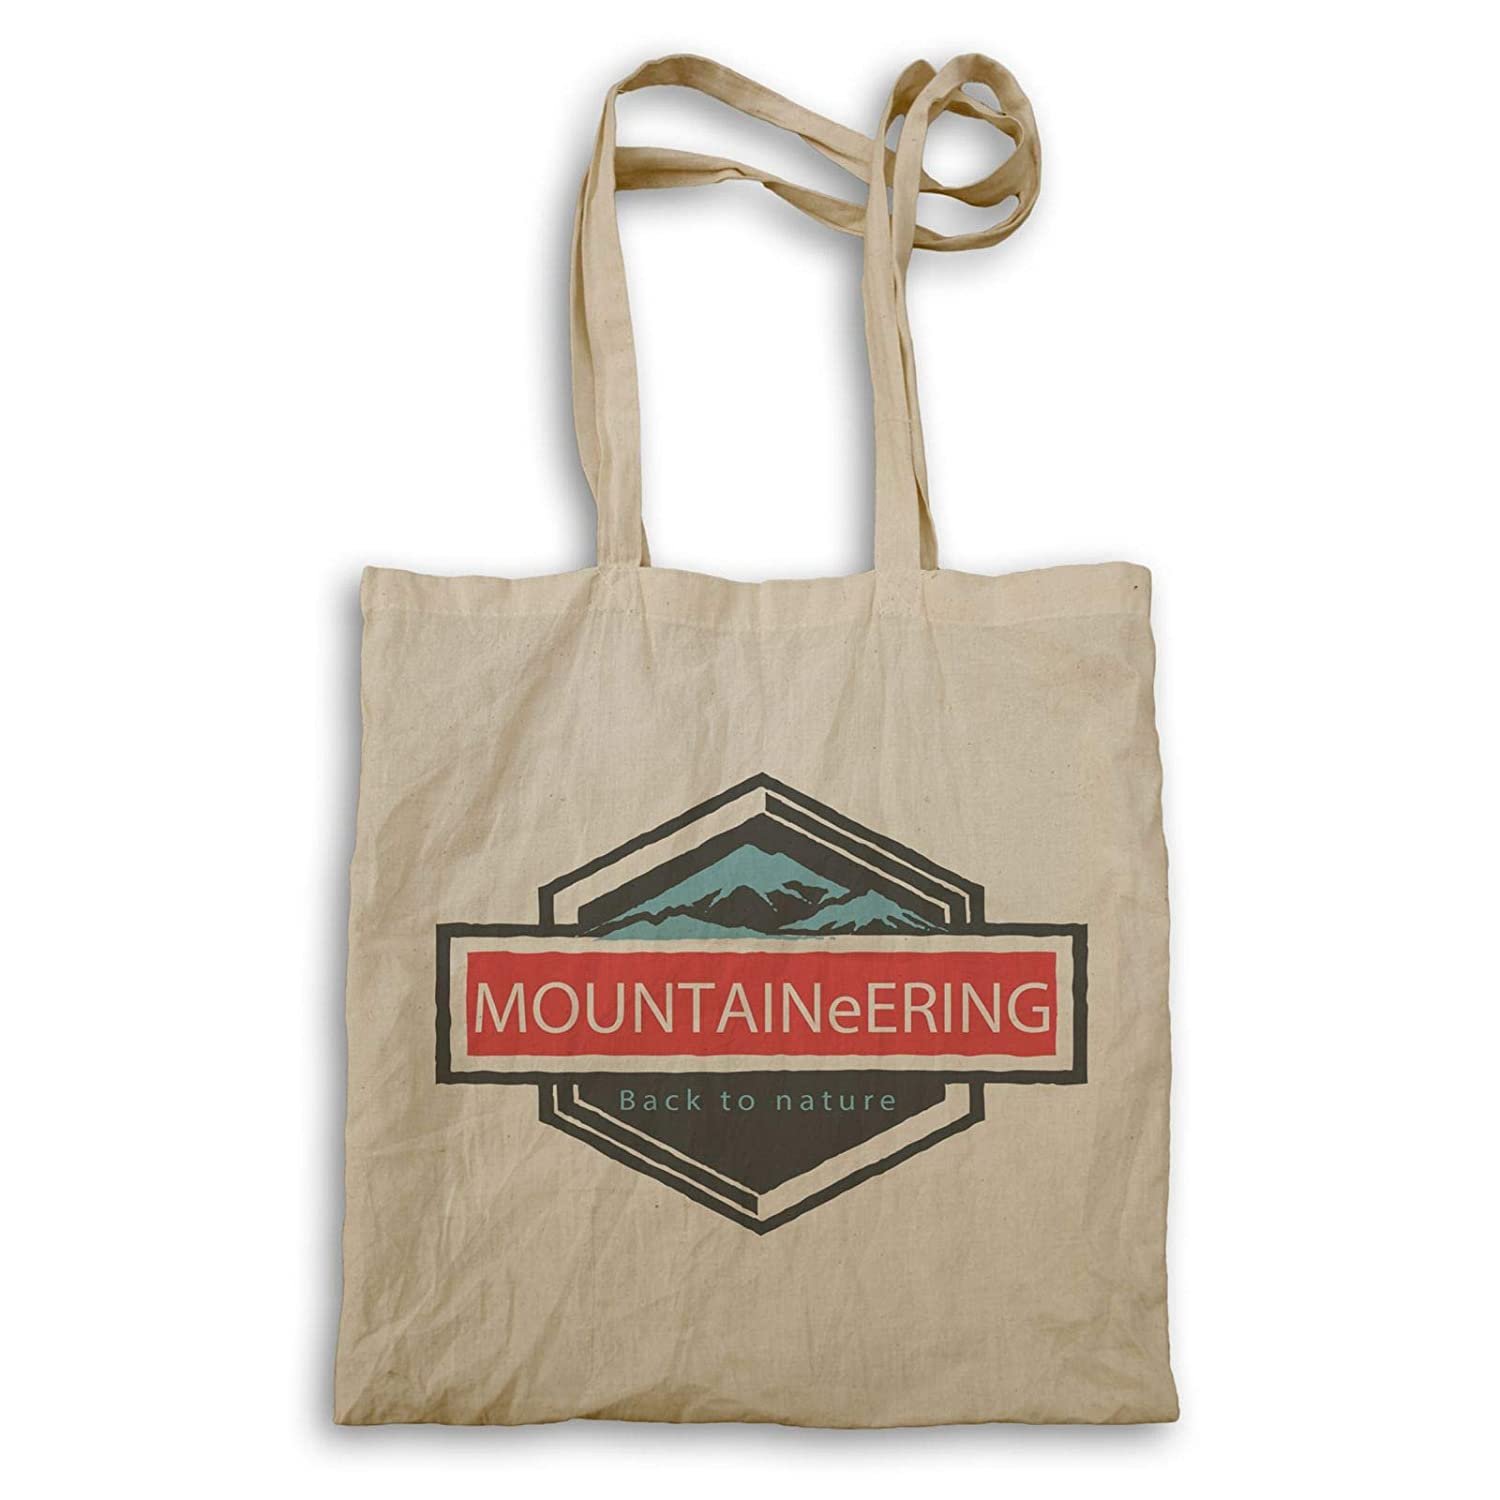 INNOGLEN Mountaineering Back to Nature Sac à Main ee548r